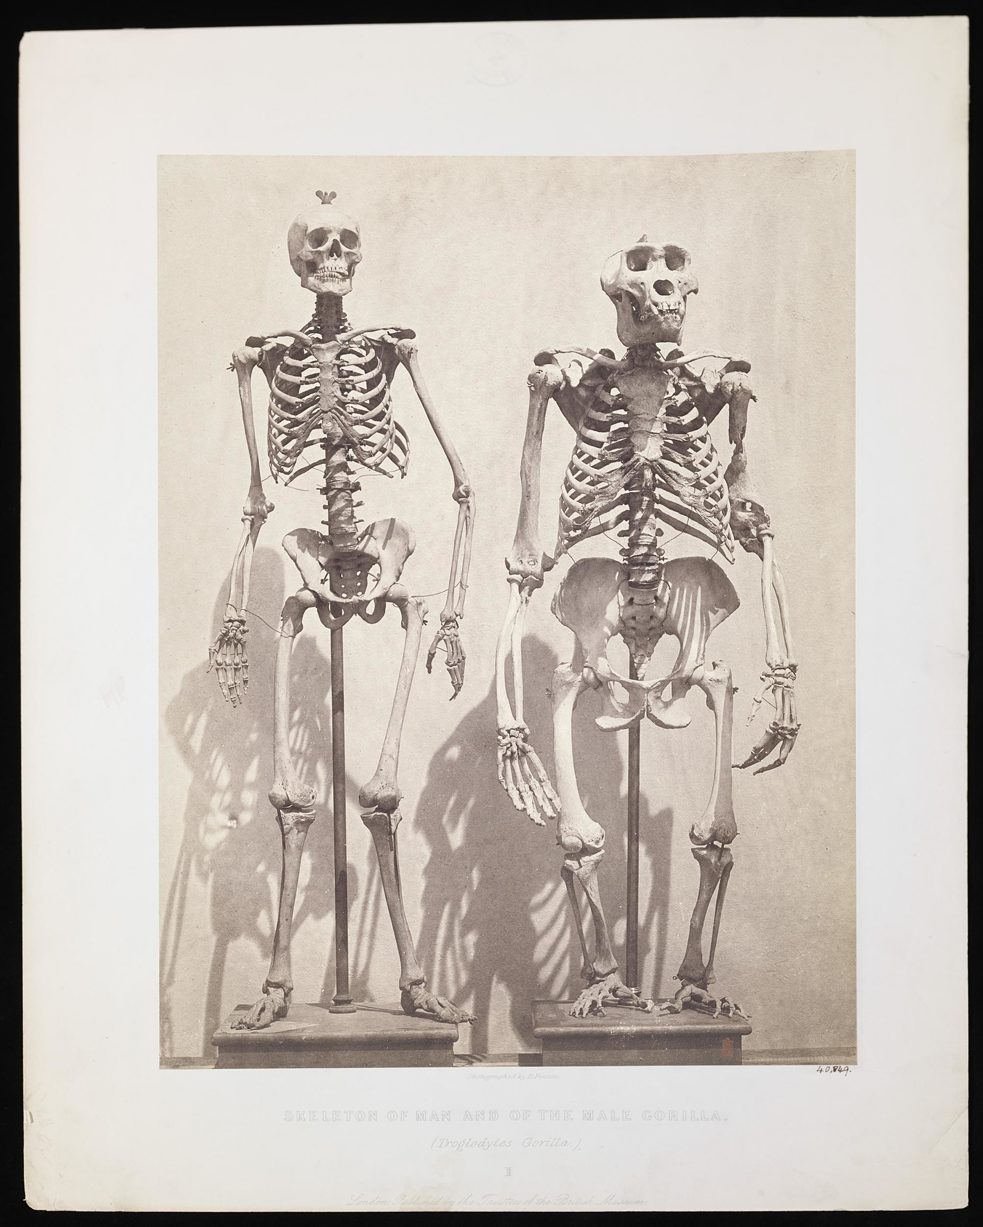 Roger Fenton, Skeleton of Man and of the Male Gorilla. London, ca. 1855